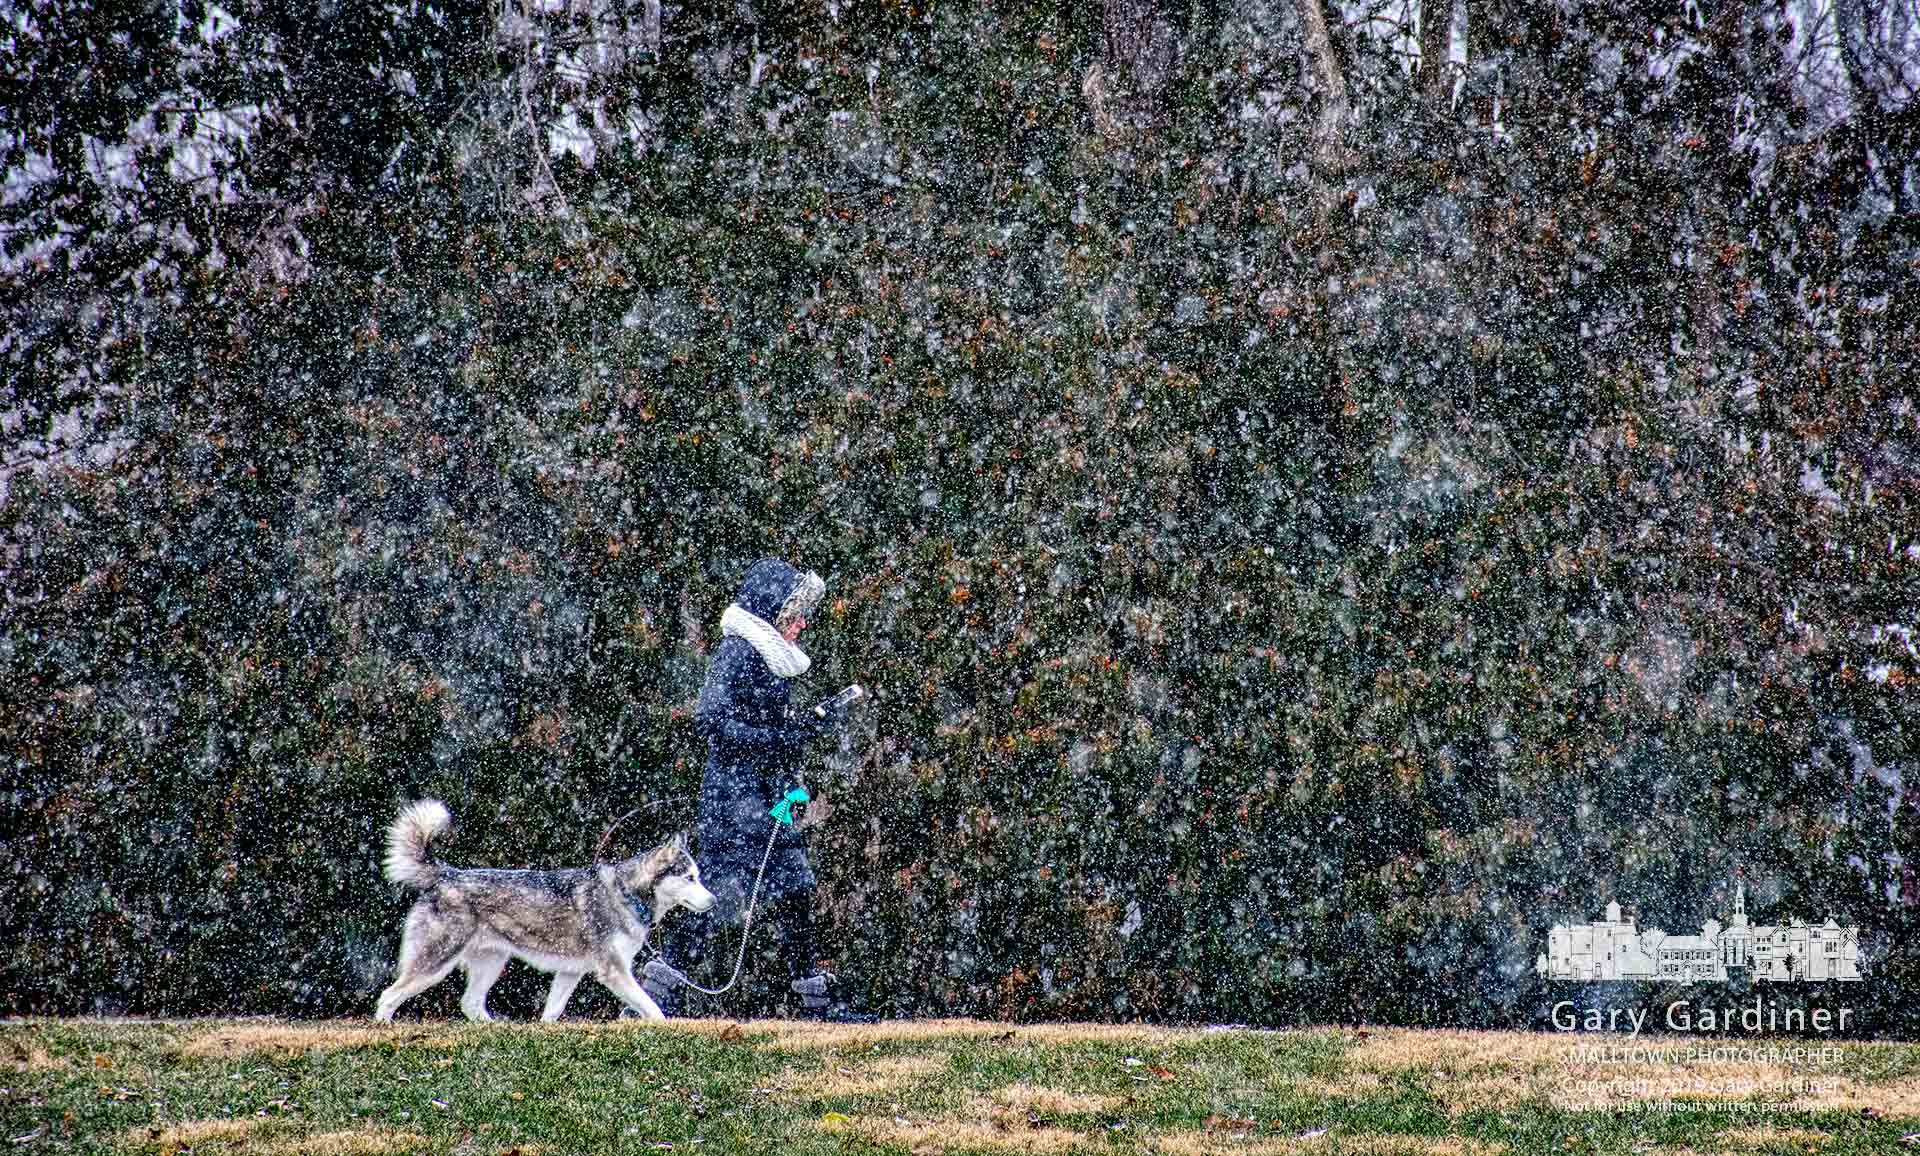 A woman checks her phone while walking her dog early Saturday morning as the first snow of the day begins to fall. My Final Photo for Jan. 12, 2019.